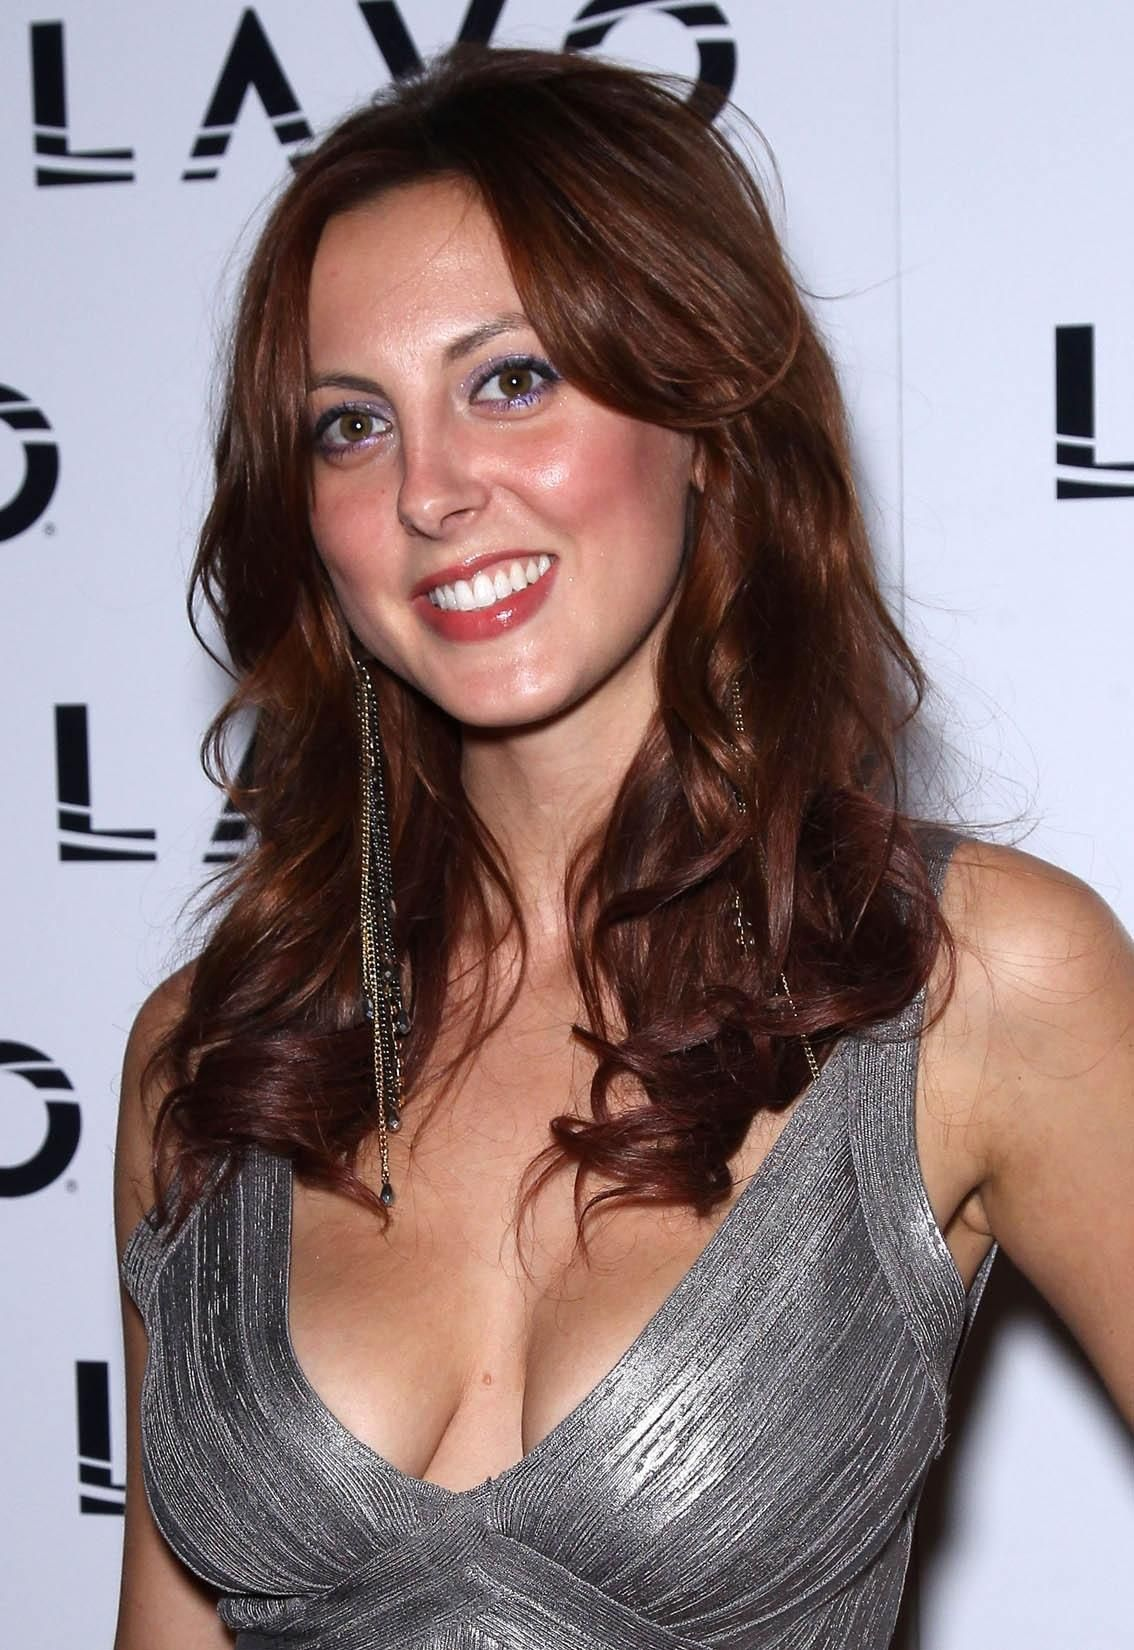 Young Eva Amurri naked (52 foto and video), Pussy, Bikini, Feet, legs 2015